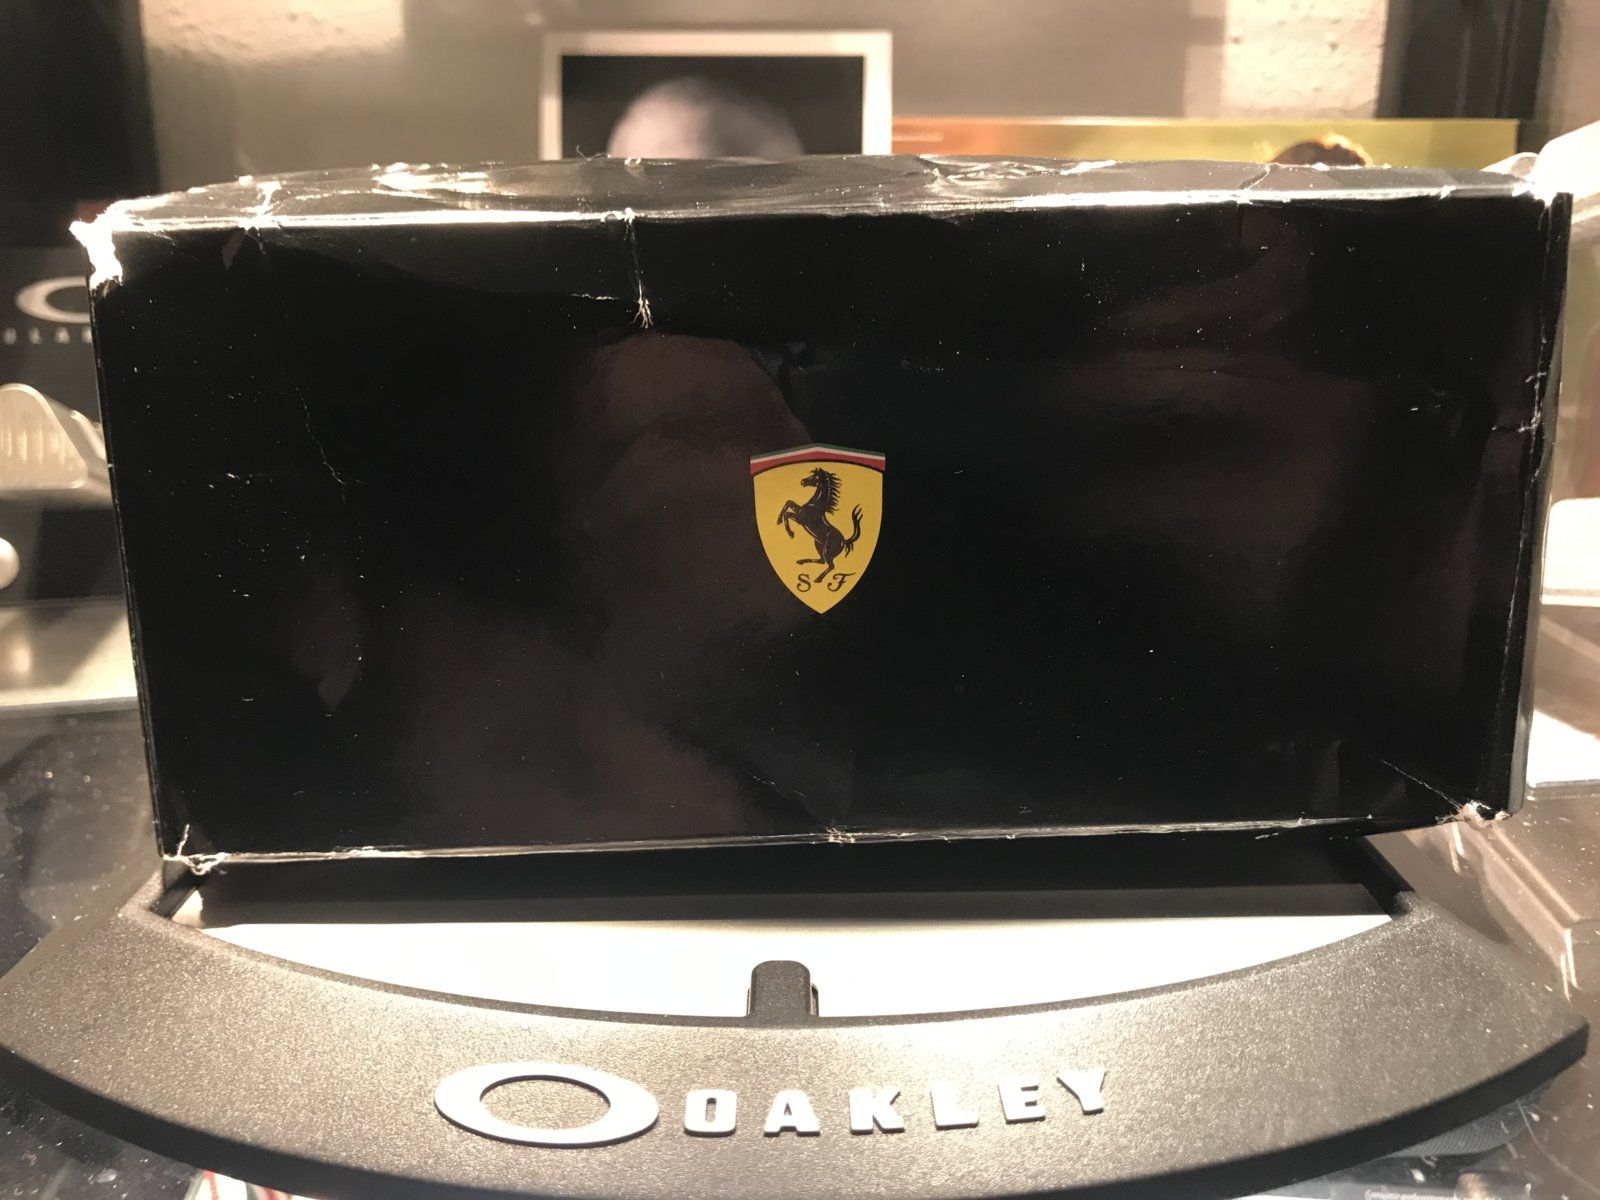 Chainlink limited edition Ferrari Matte Steel w/ Black Iridium - B23EB07C-9228-4A6C-8A3D-80F331478E47.jpeg